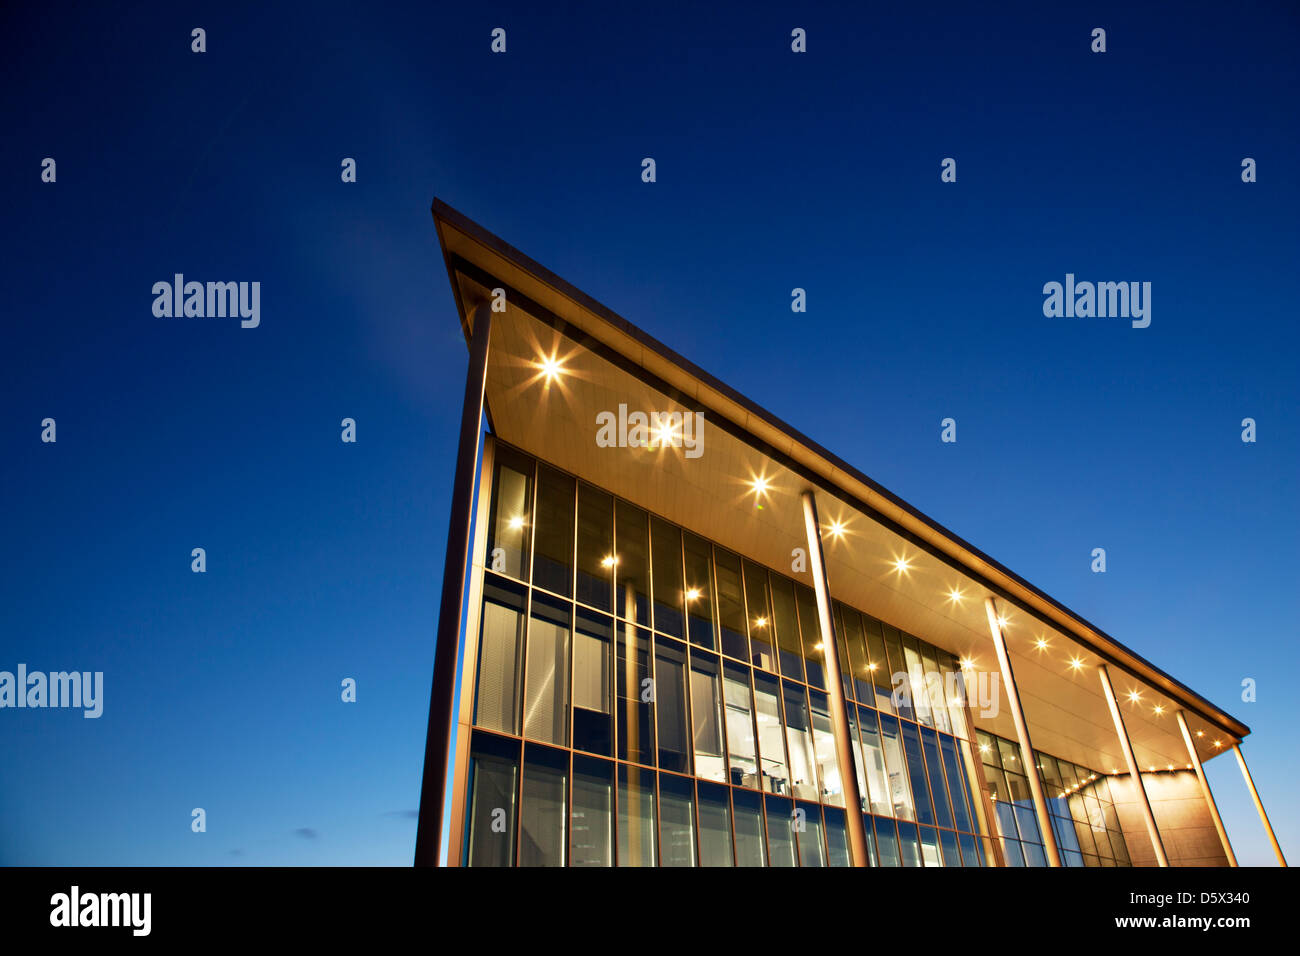 Modern building illuminated at dusk - Stock Image